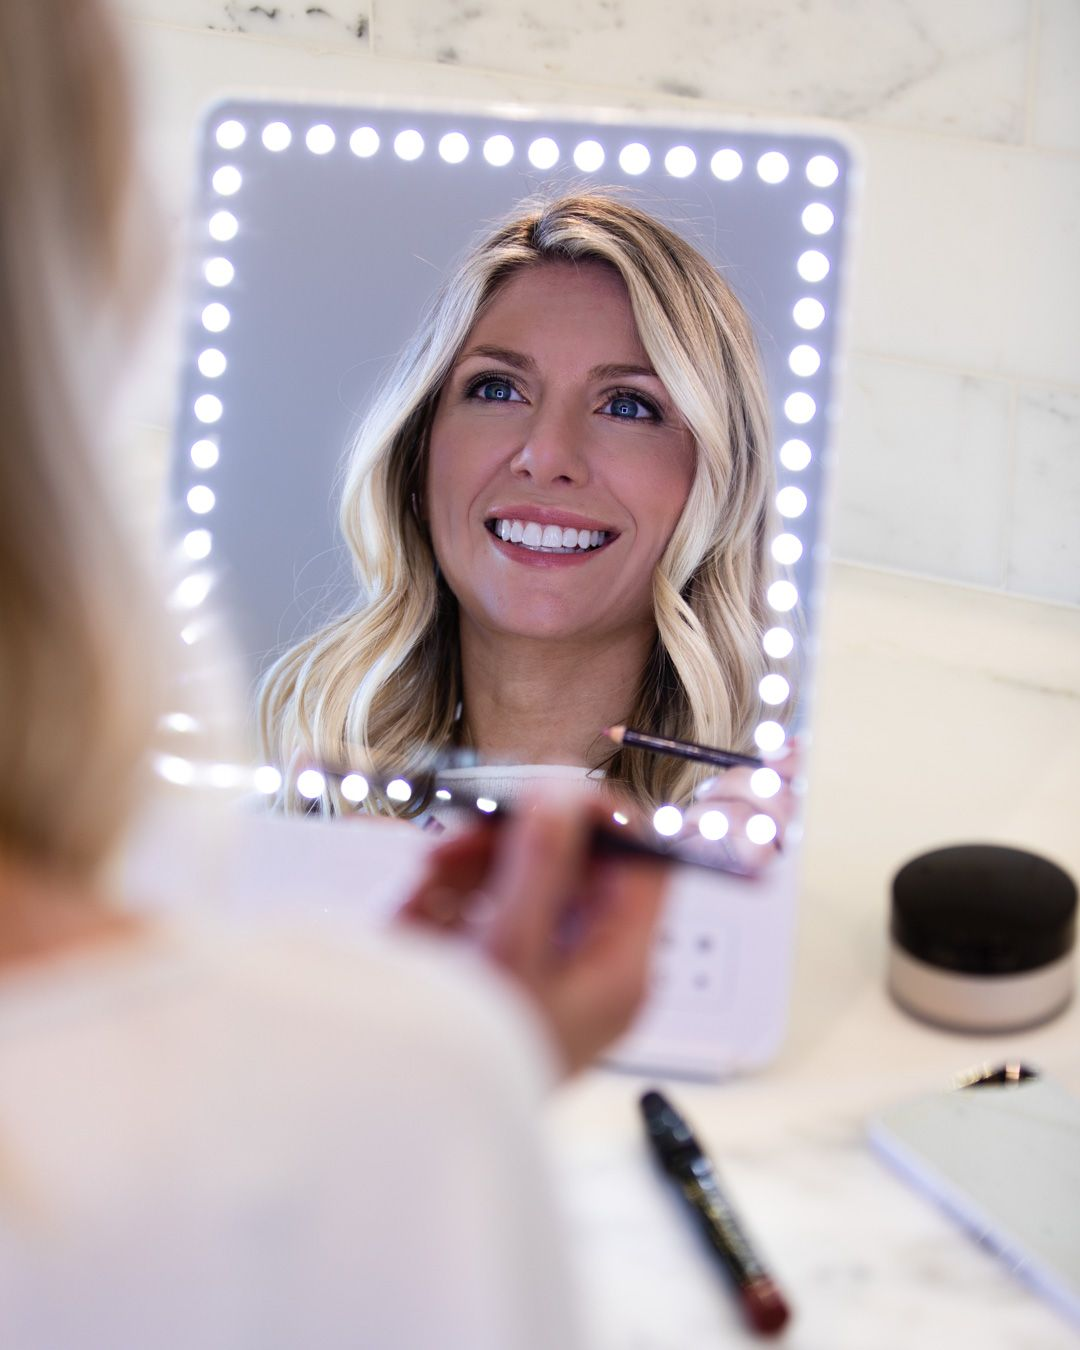 Glamcor Riki Skinny Makeup Mirror The Glamorous Gal Everything Fashion Riki Skinny Mirror Makeup Mirror Makeup